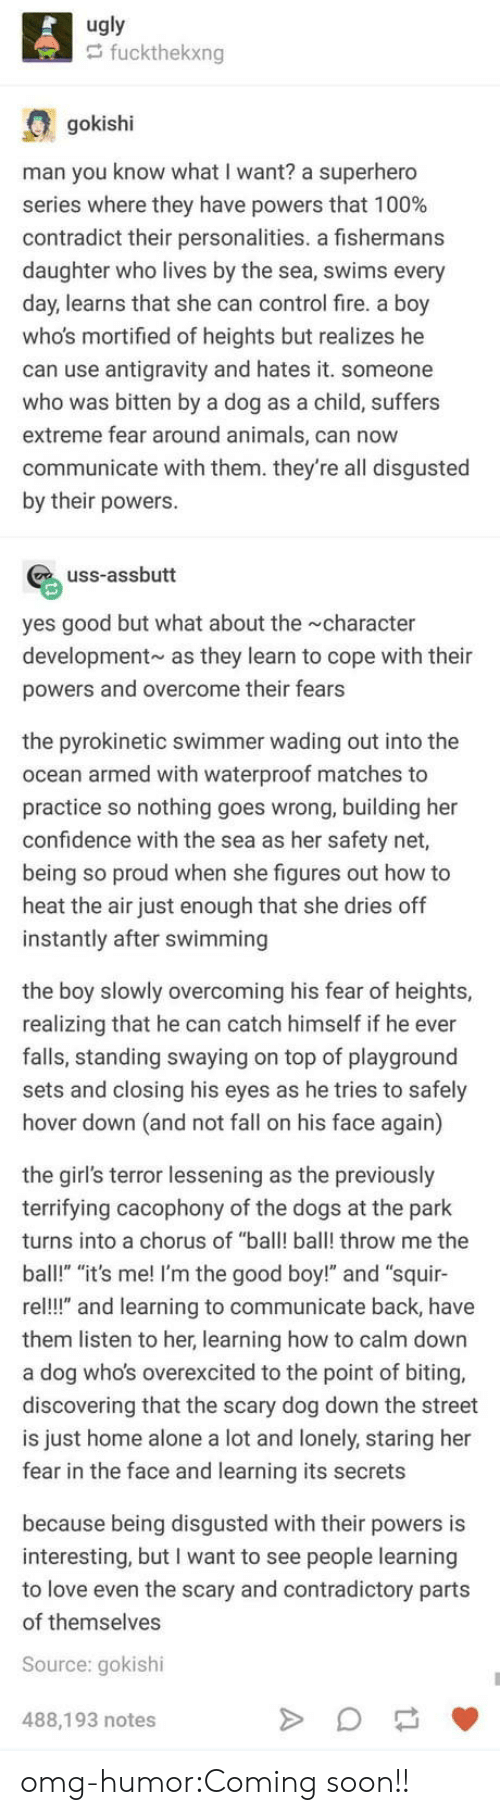 """swimmer: ugly  fuckthekxng  gokishi  man you know what I want? a superhero  series where they have powers that 100%  contradict their personalities. a fishermans  daughter who lives by the sea, swims every  day, learns that she can control fire. a boy  whos mortified of heights but realizes he  can use antigravity and hates it. someone  who was bitten by a dog as a child, suffers  extreme fear around animals, can now  communicate with them. they're all disgusted  by their powers.  uss-assbutt  yes good but what about the character  development as they learn to cope with their  powers and overcome their fears  the pyrokinetic swimmer wading out into the  ocean armed with waterproof matches to  practice so nothing goes wrong, building her  confidence with the sea as her safety net,  being so proud when she figures out how to  heat the air just enough that she dries off  instantly after swimming  the boy slowly overcoming his fear of heights,  realizing that he can catch himself if he ever  falls, standing swaying on top of playground  sets and closing his eyes as he tries to safely  hover down (and not fall on his face again)  the girl's terror lessening as the previously  terrifying cacophony of the dogs at the park  turns into a chorus of ba ball! throw me the  ball!"""" """"it's me! I'm the good boy!"""" and """"squir-  re!!"""" and learning to communicate back, have  them listen to her, learning how to calm down  a dog who's overexcited to the point of biting,  discovering that the scary dog down the street  is just home alone a lot and lonely, staring her  fear in the face and learning its secrets  because being disgusted with their powers is  interesting, but I want to see people learning  to love even the scary and contradictory parts  of themselves  Source: gokishi  488,193 notes omg-humor:Coming soon!!"""